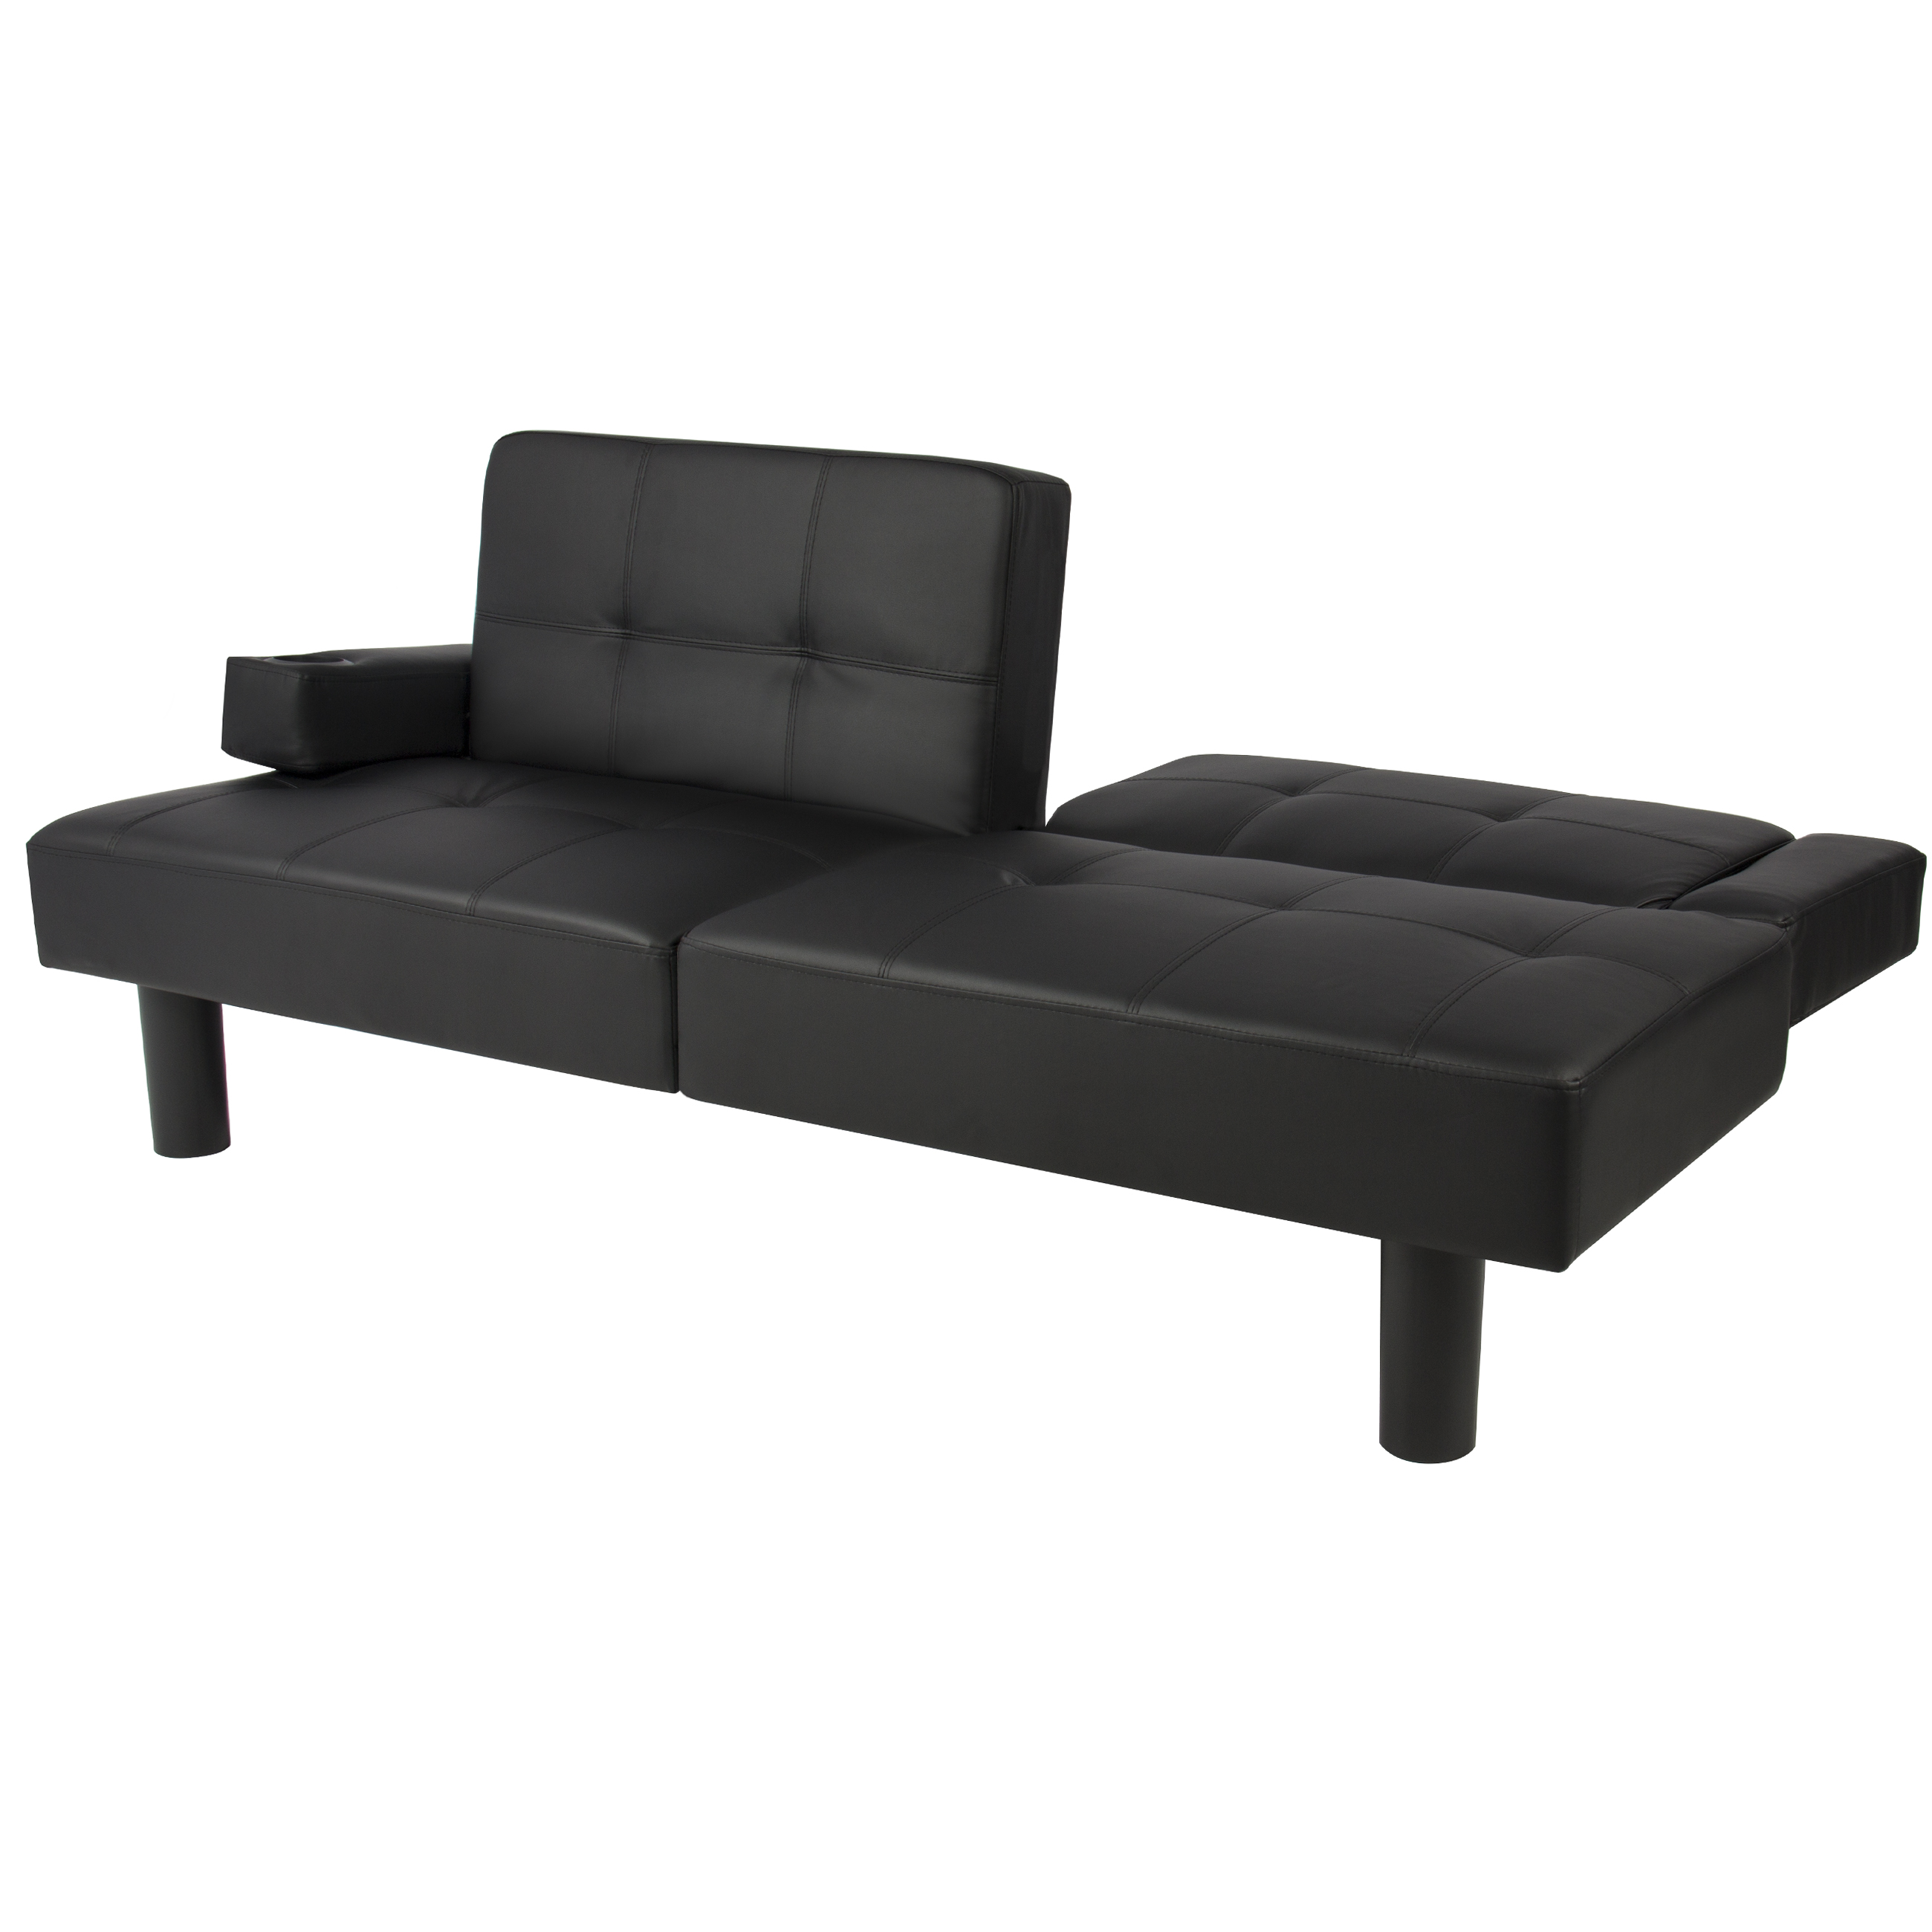 sofa ip storage bed mainstays colors tyler futon walmart multiple sleeper with couch com